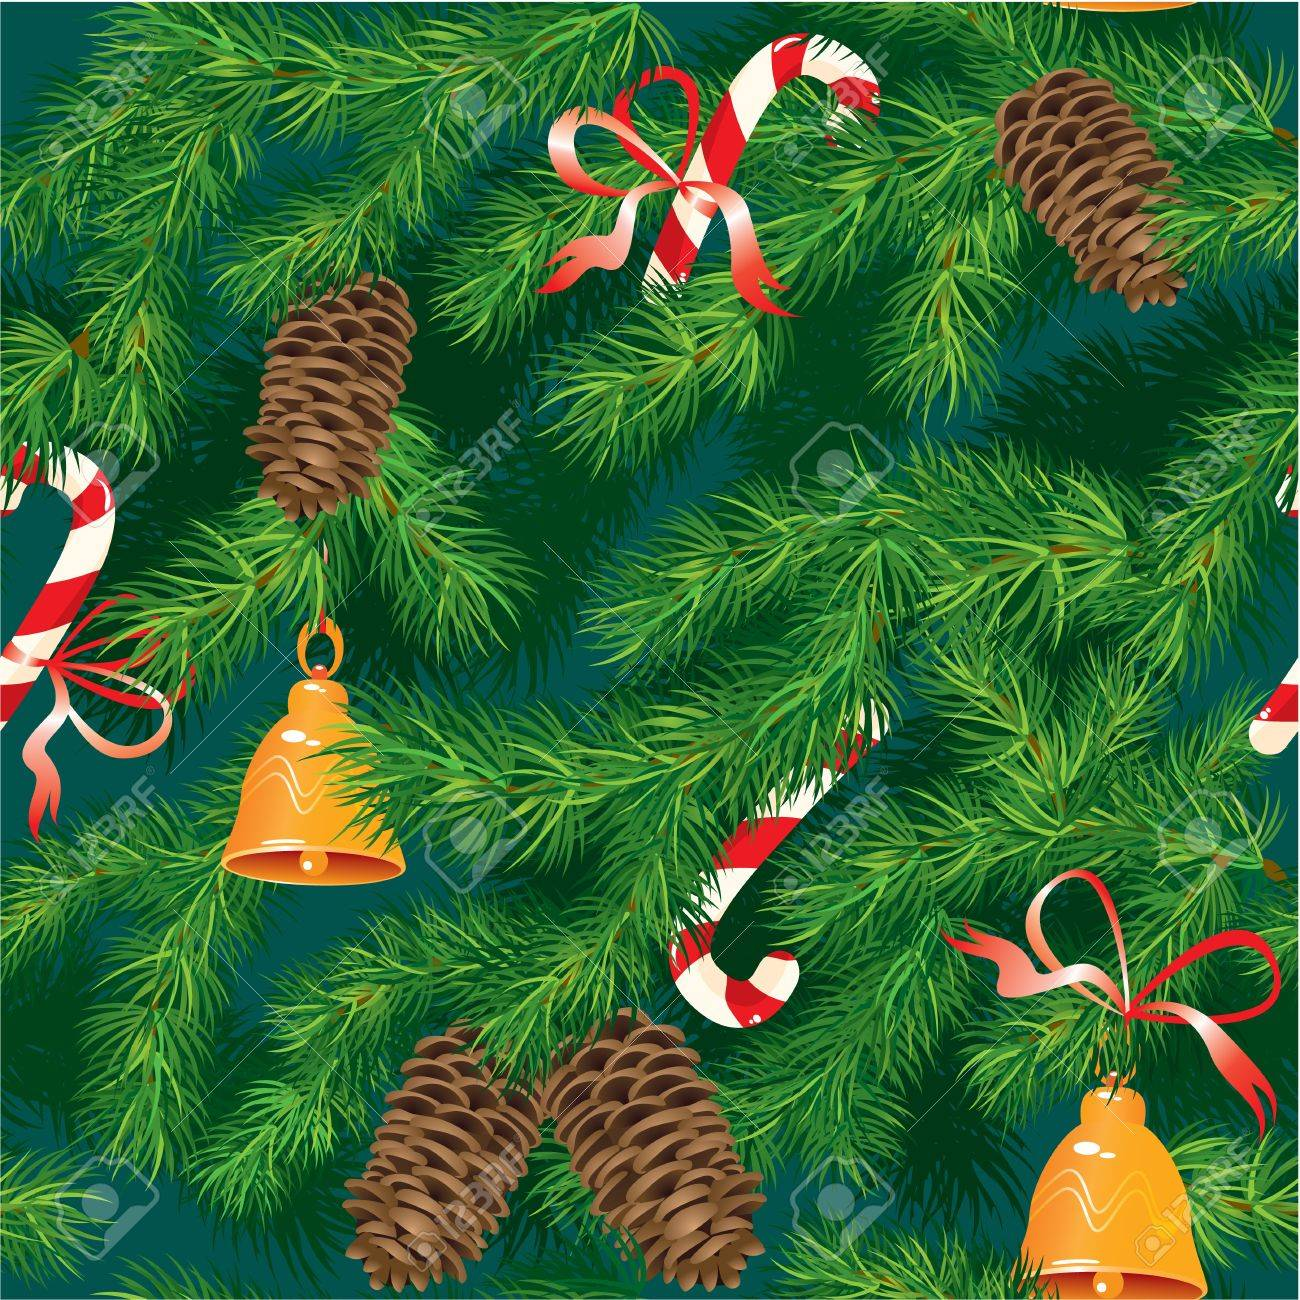 christmas and new year background fir tree texture with xmas accessories seamless pattern stock